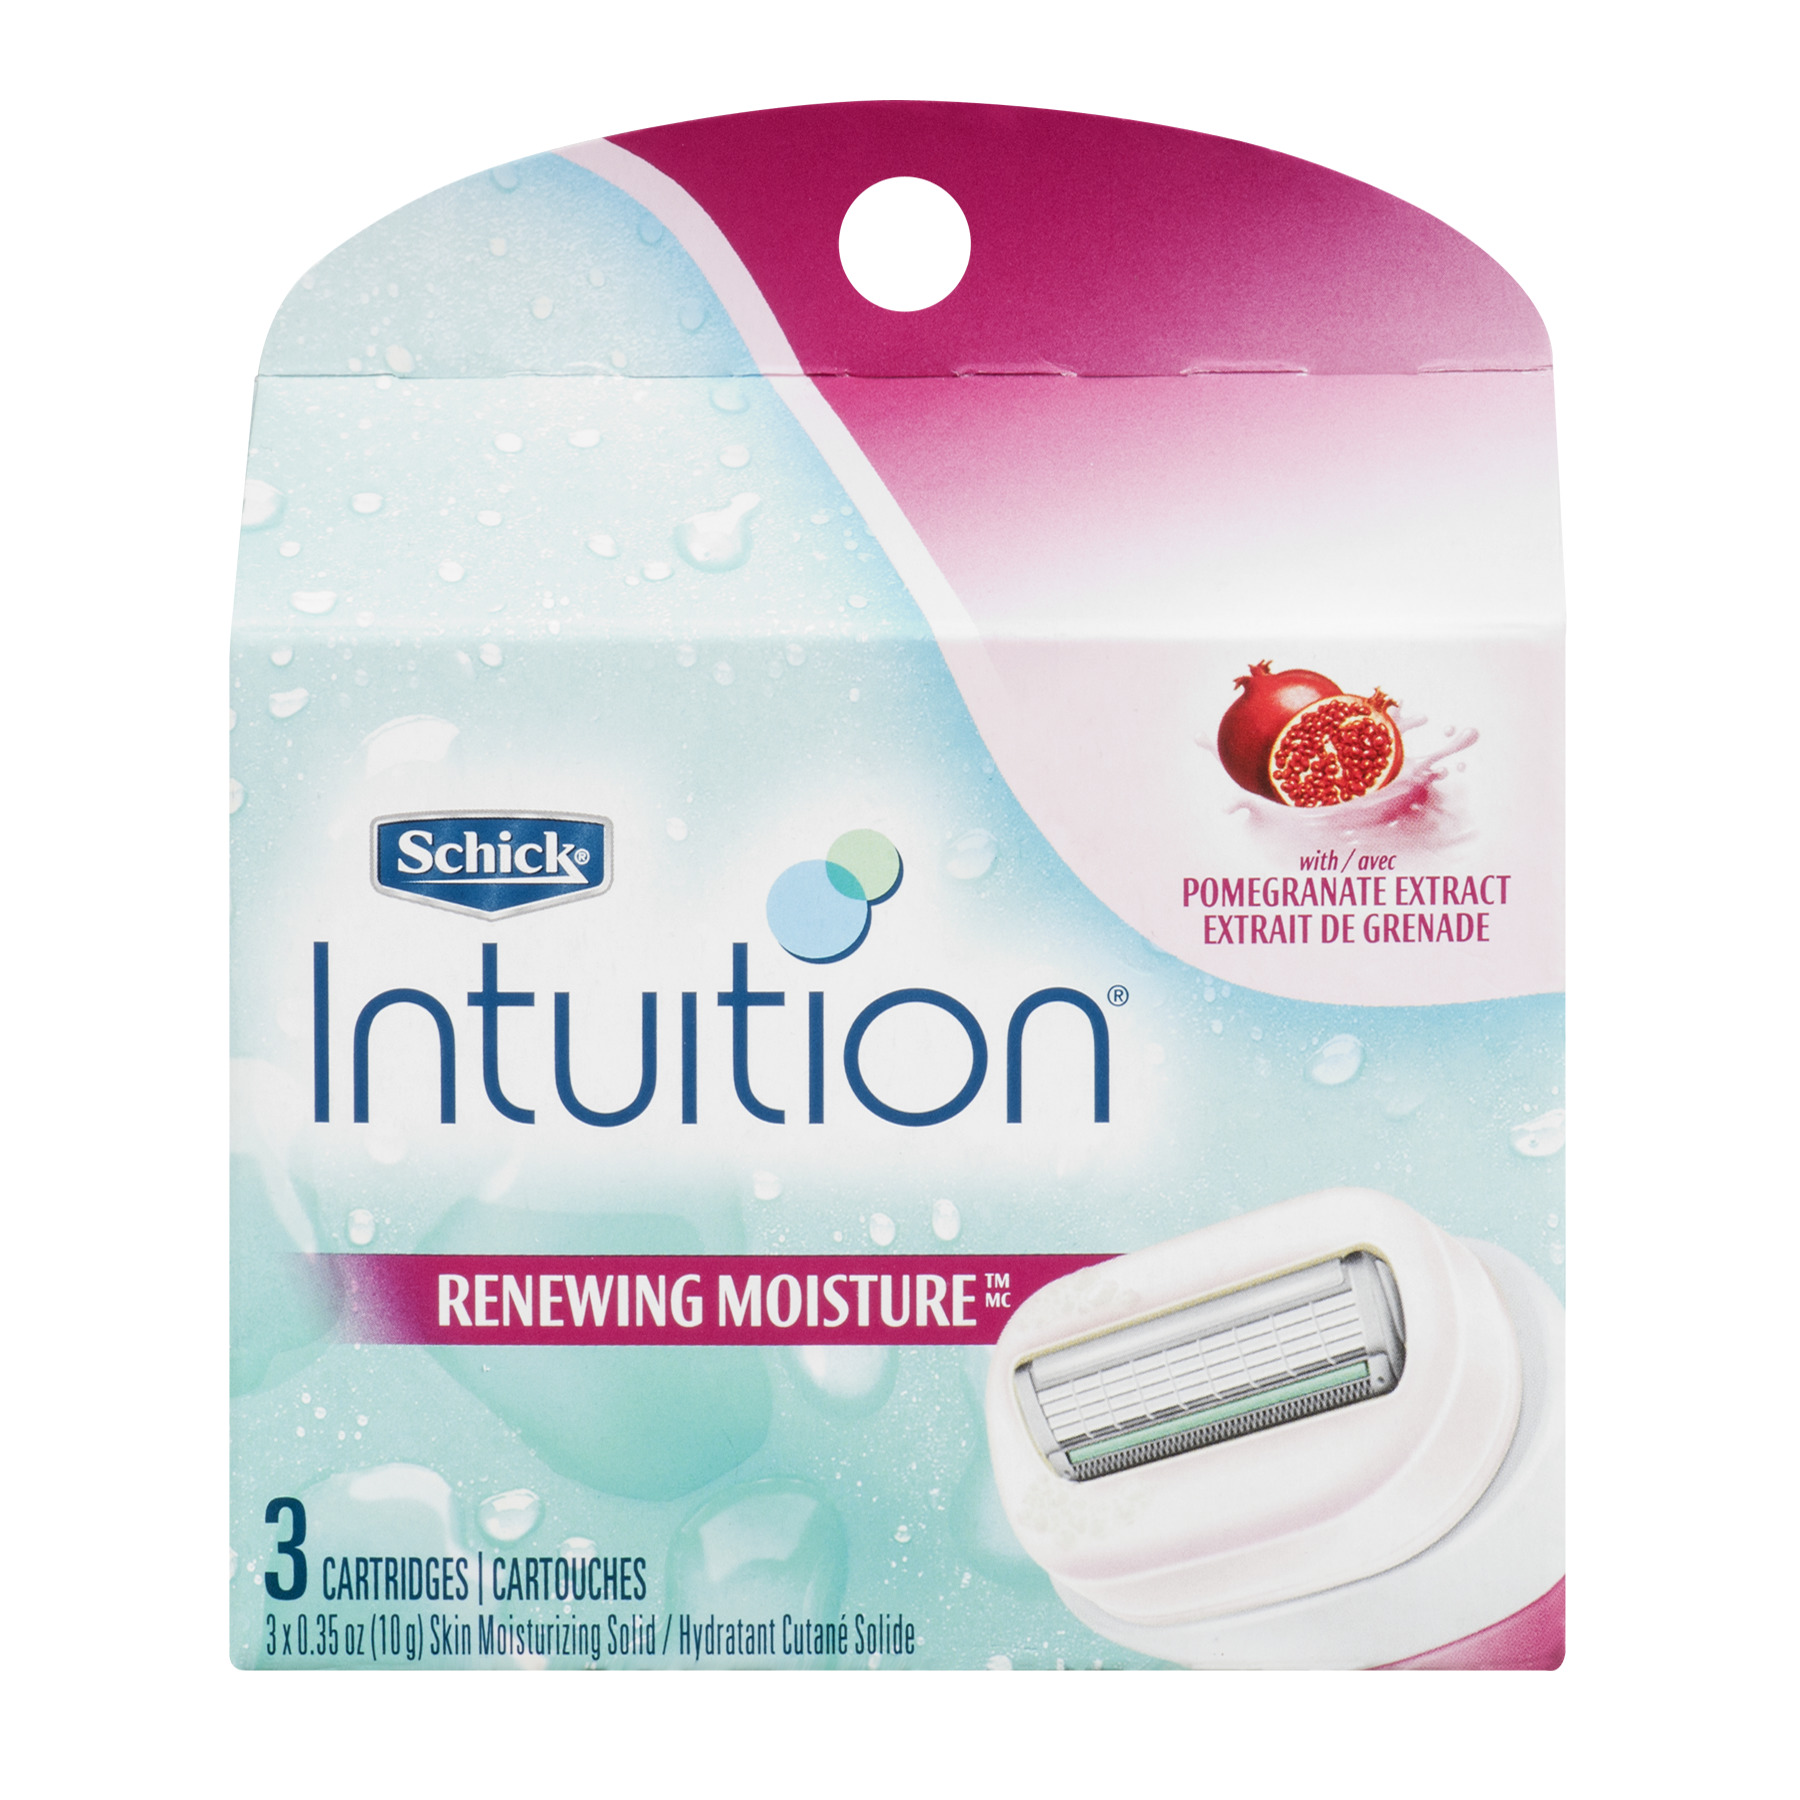 Schick Intuition Plus Renewing Moisture Razor With Pomegranate Extract - 3 CT3.0 CT